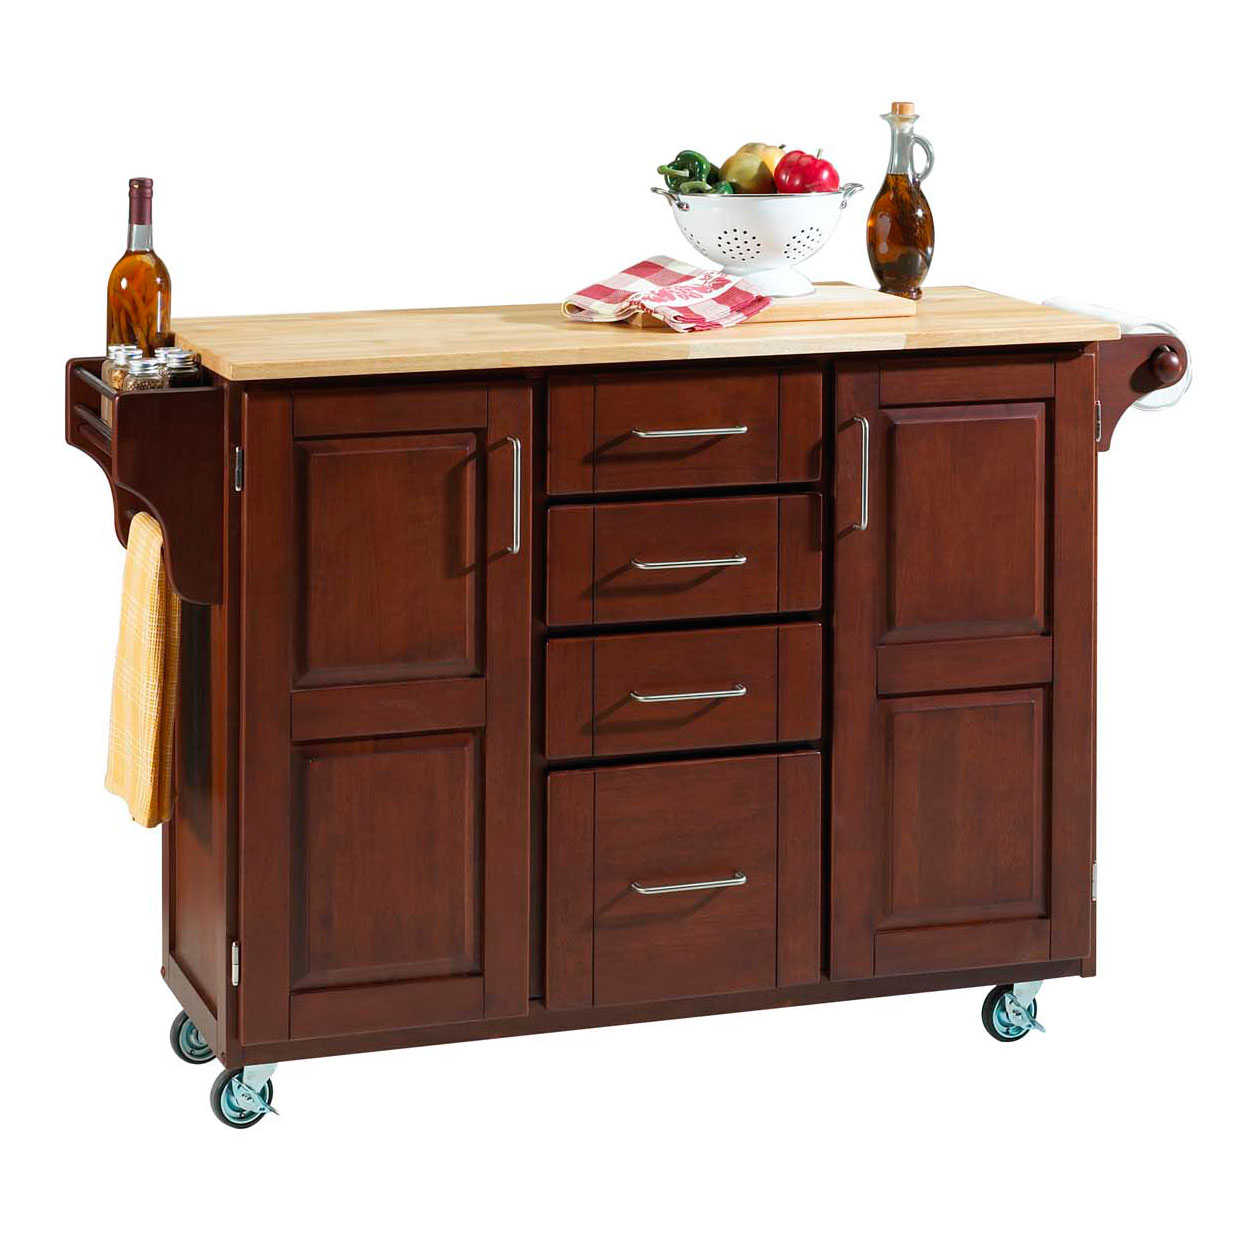 Large Cherry Finish Create a Cart with Wood Top, CHERRY WOOD